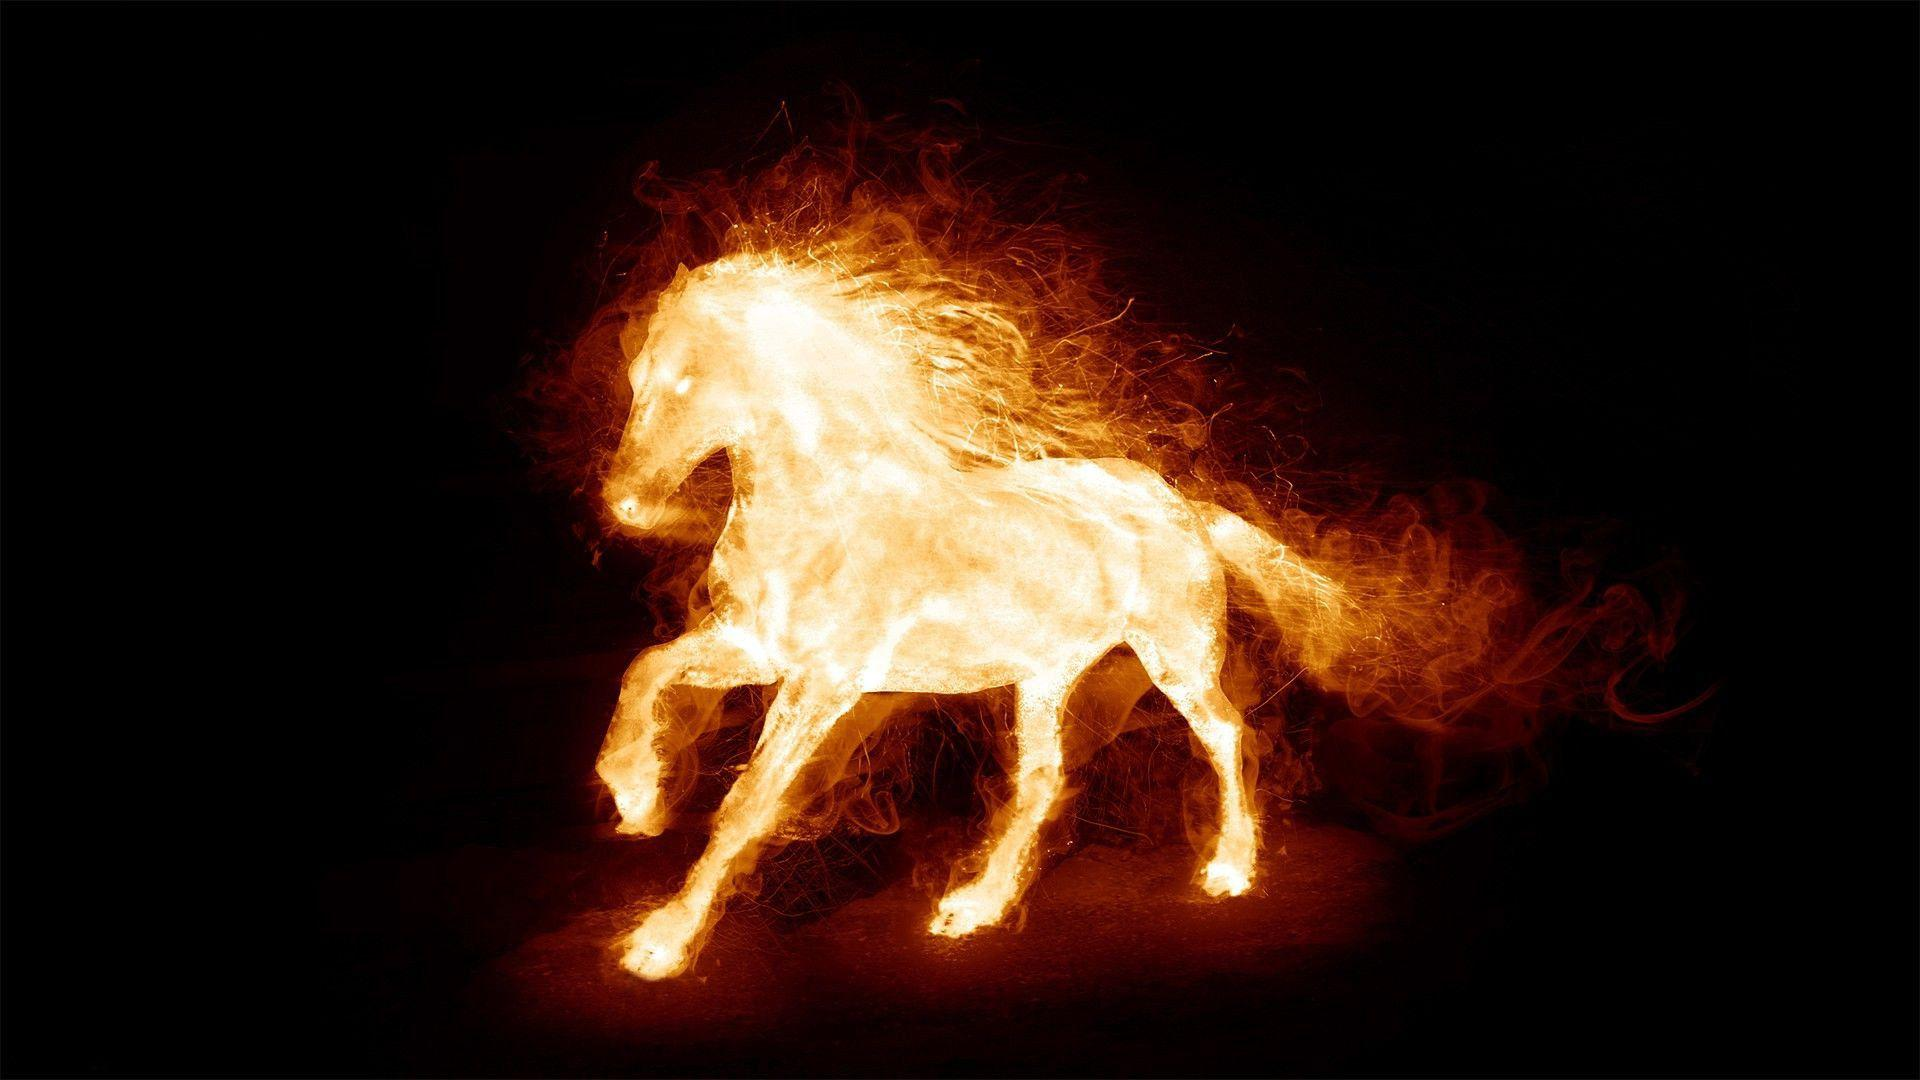 Burning Horse Wallpaper Fire Hd 12811 Wallpapers